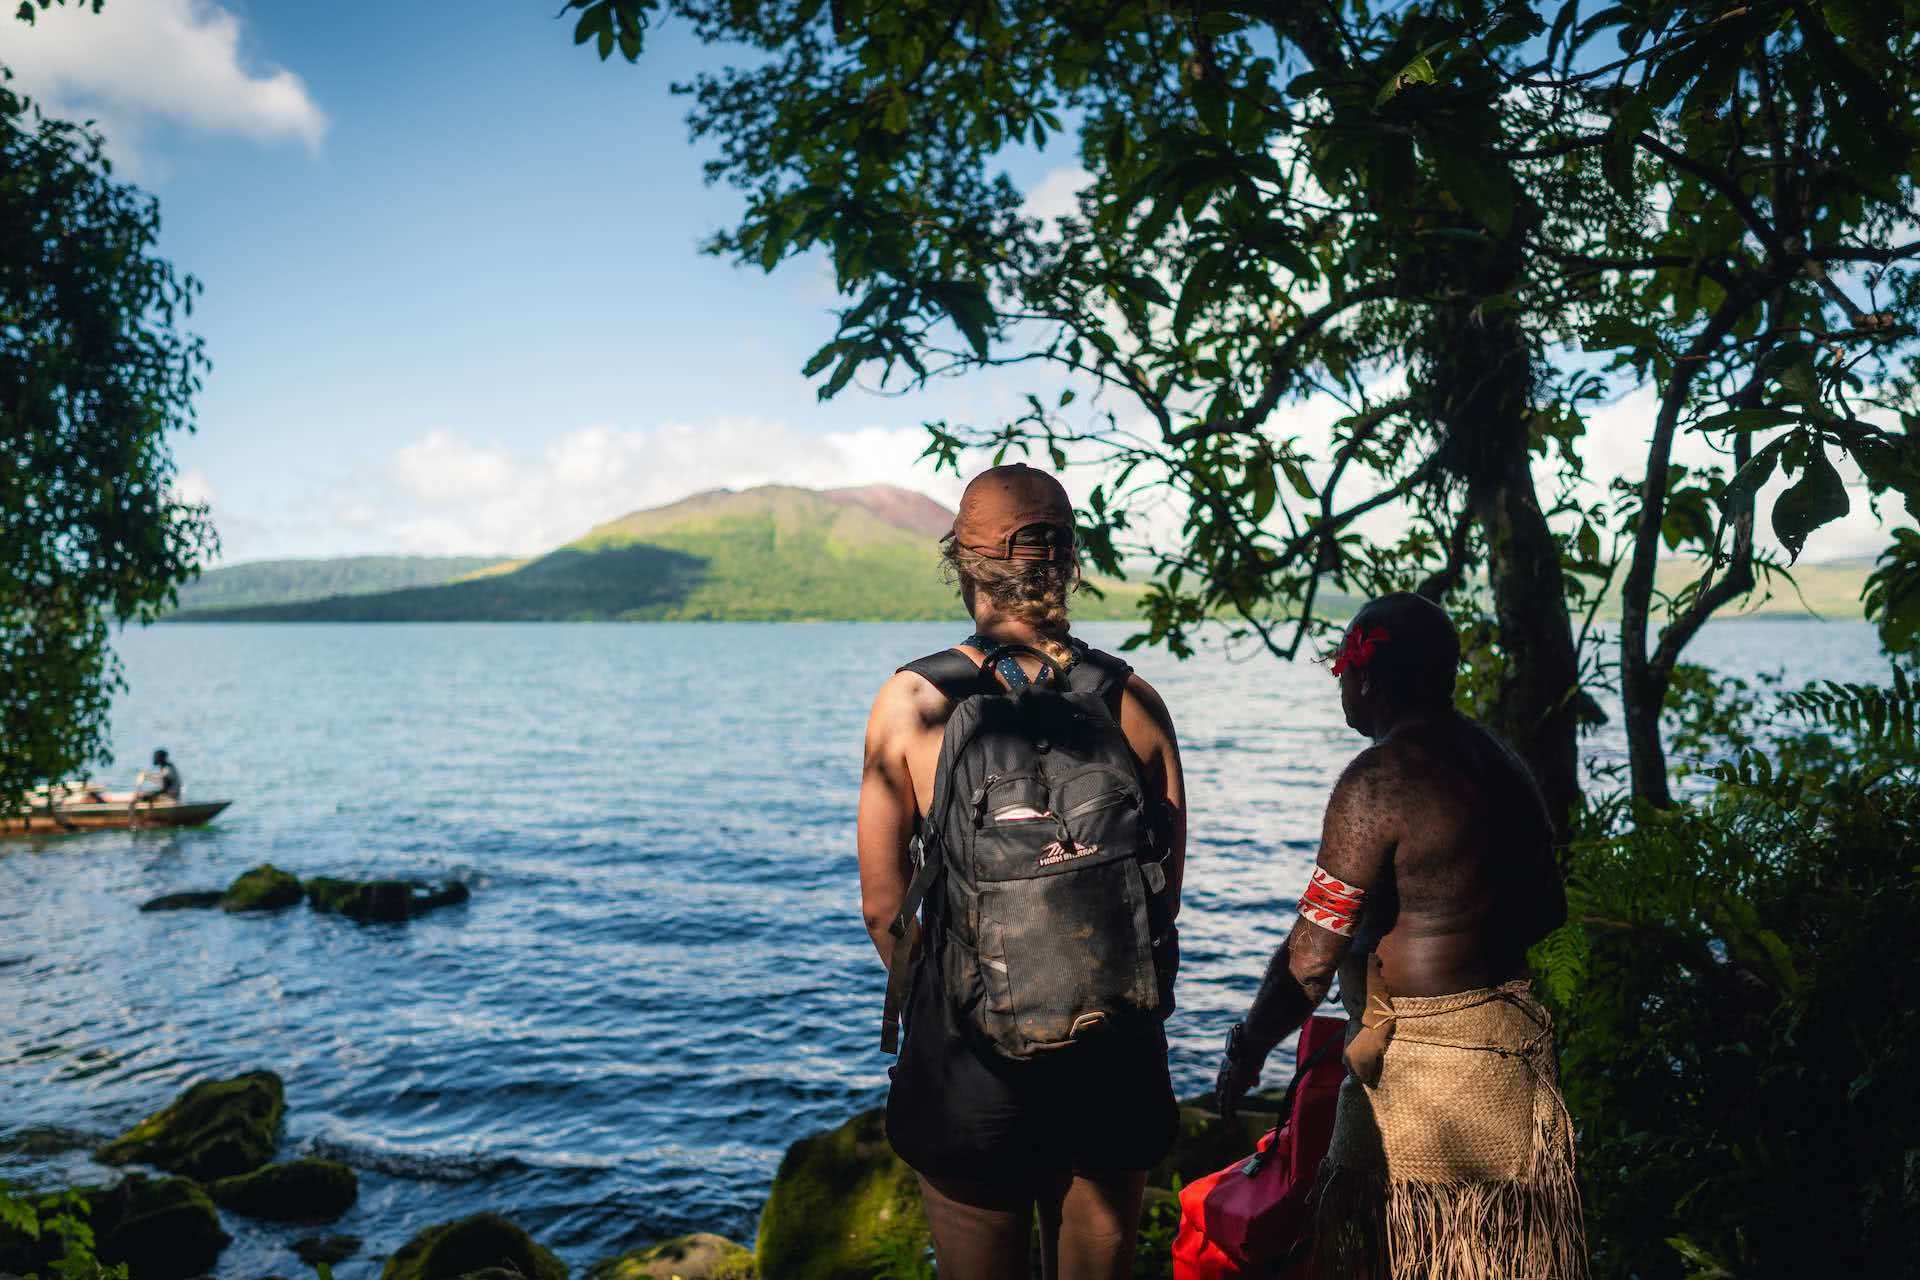 An Insider's Guide to Gaua, photos by Ben Savage and Ain Raadik, Ruby Claire, Vanuatu, island, chief, man, Lake Letas, Mt garet, rigger canoes